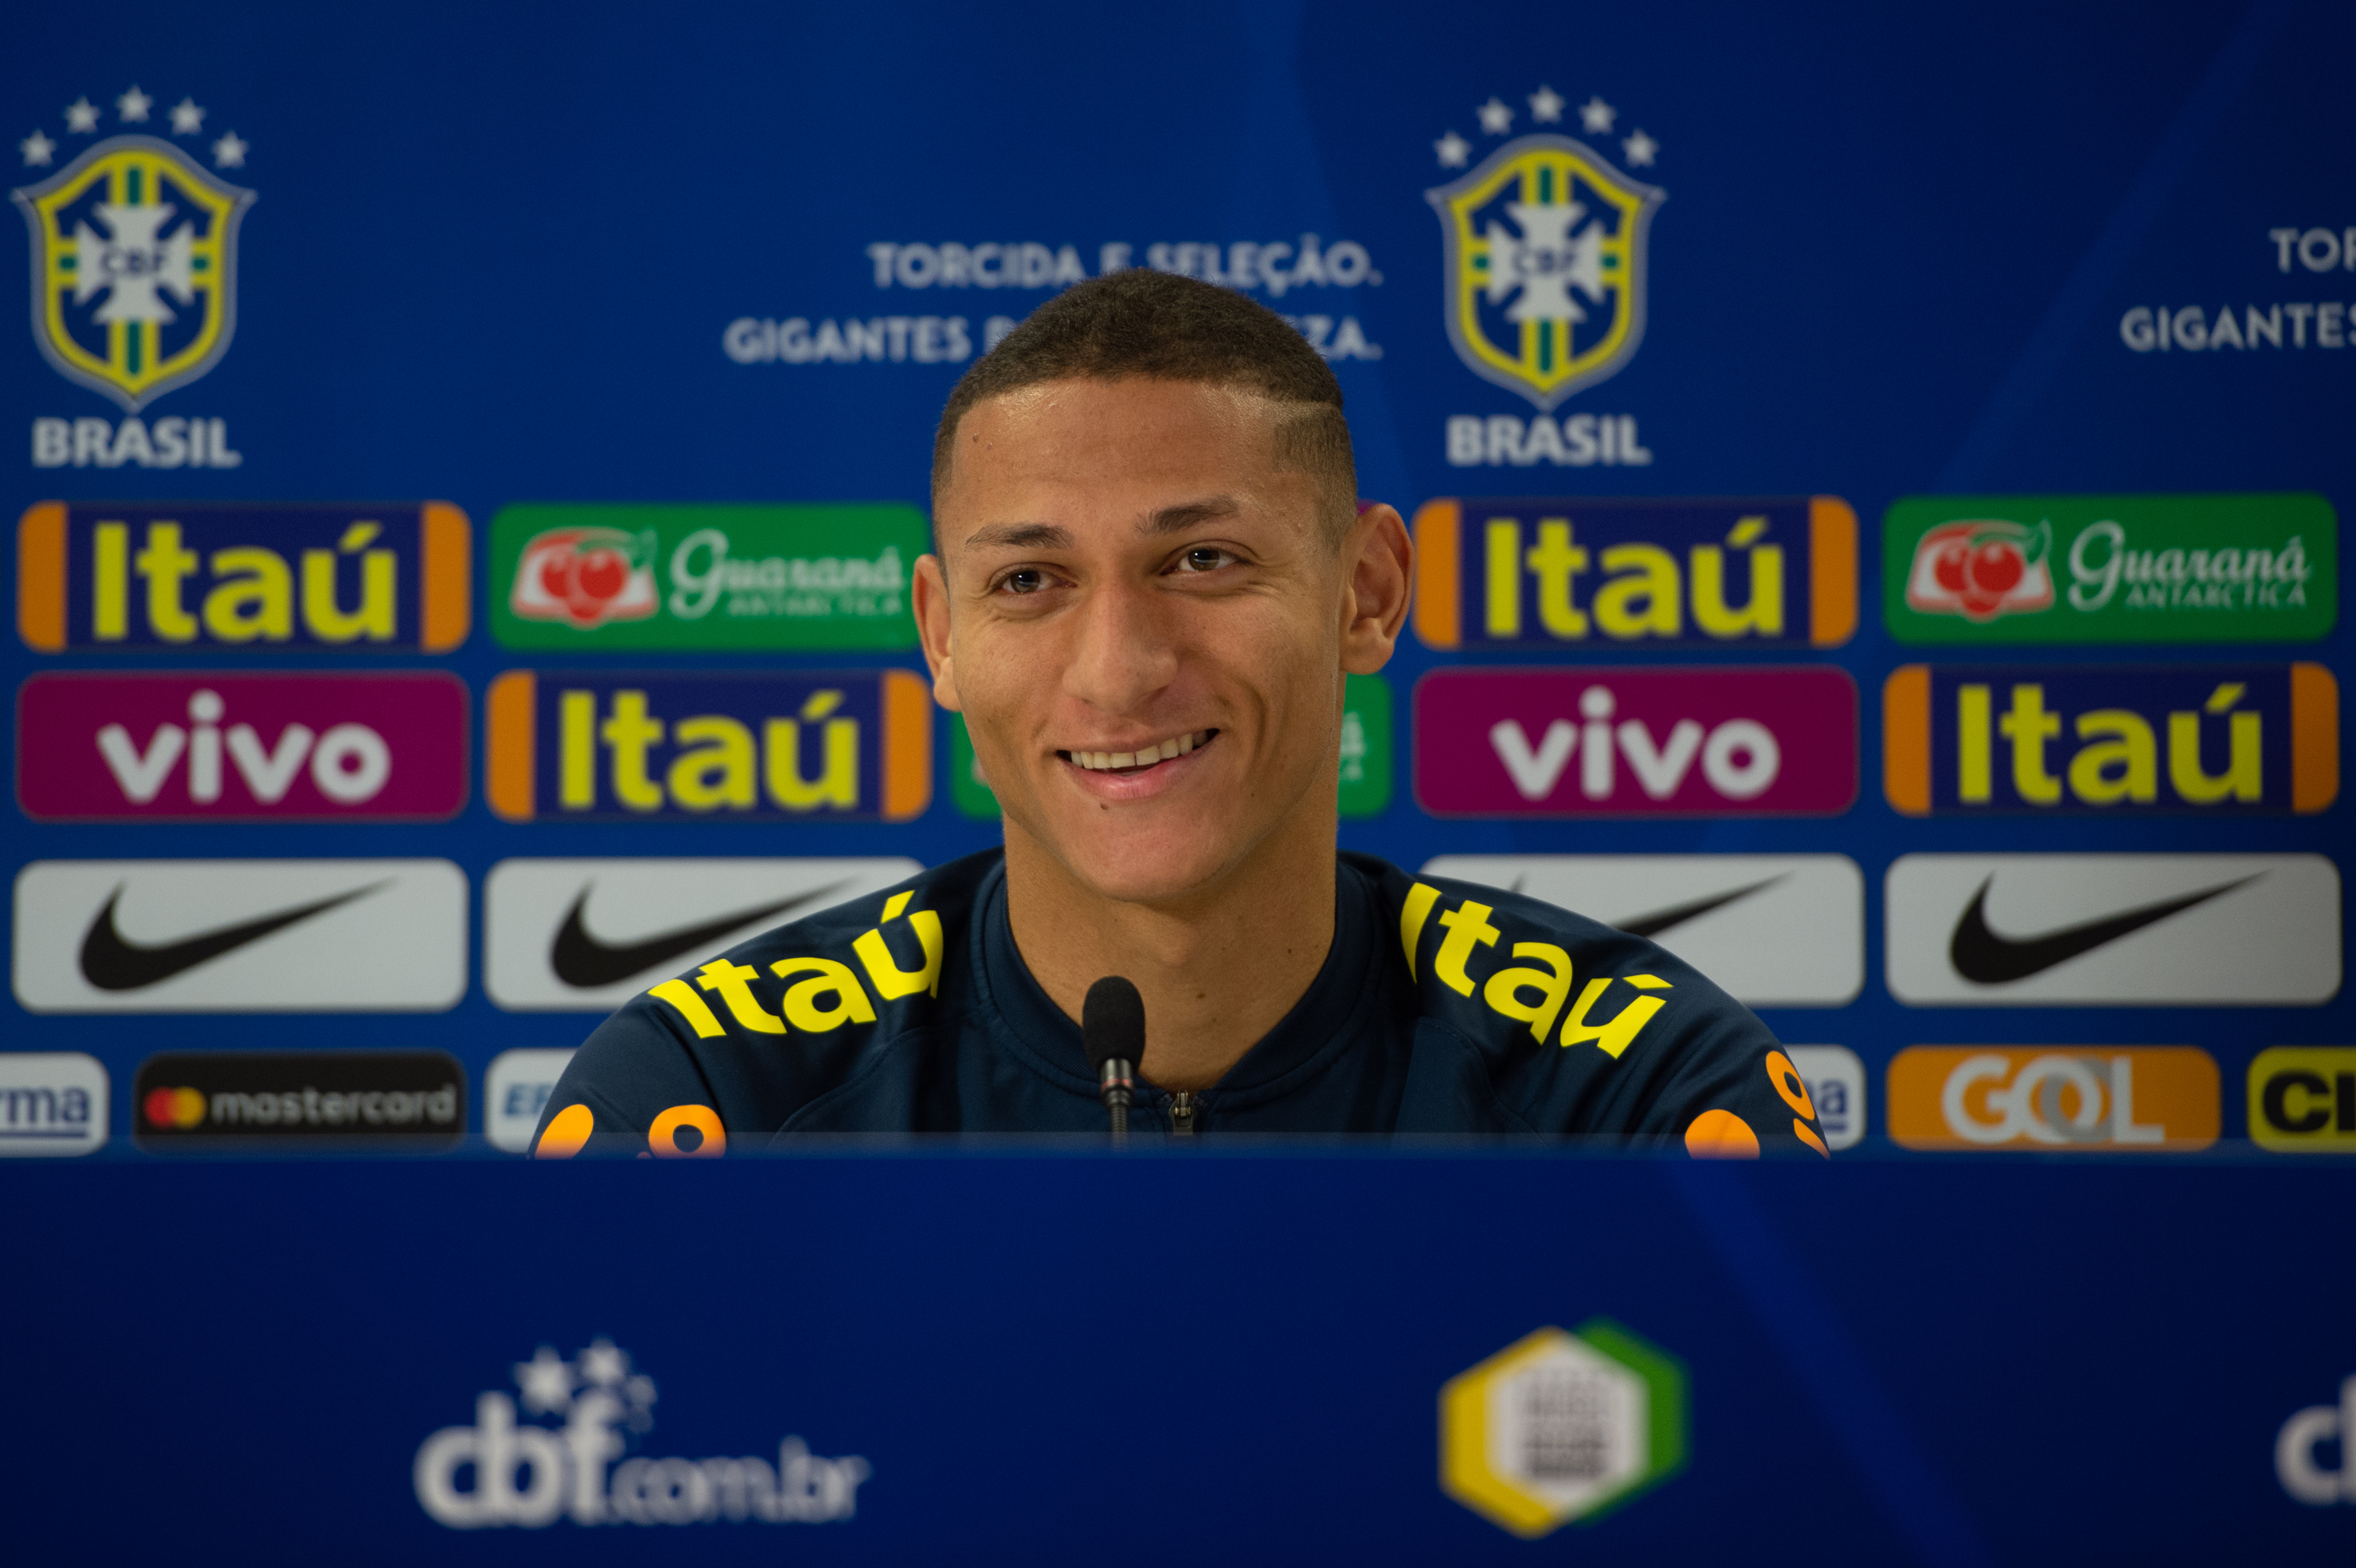 dafdcb8d0 Charismatic Richarlison winning hearts